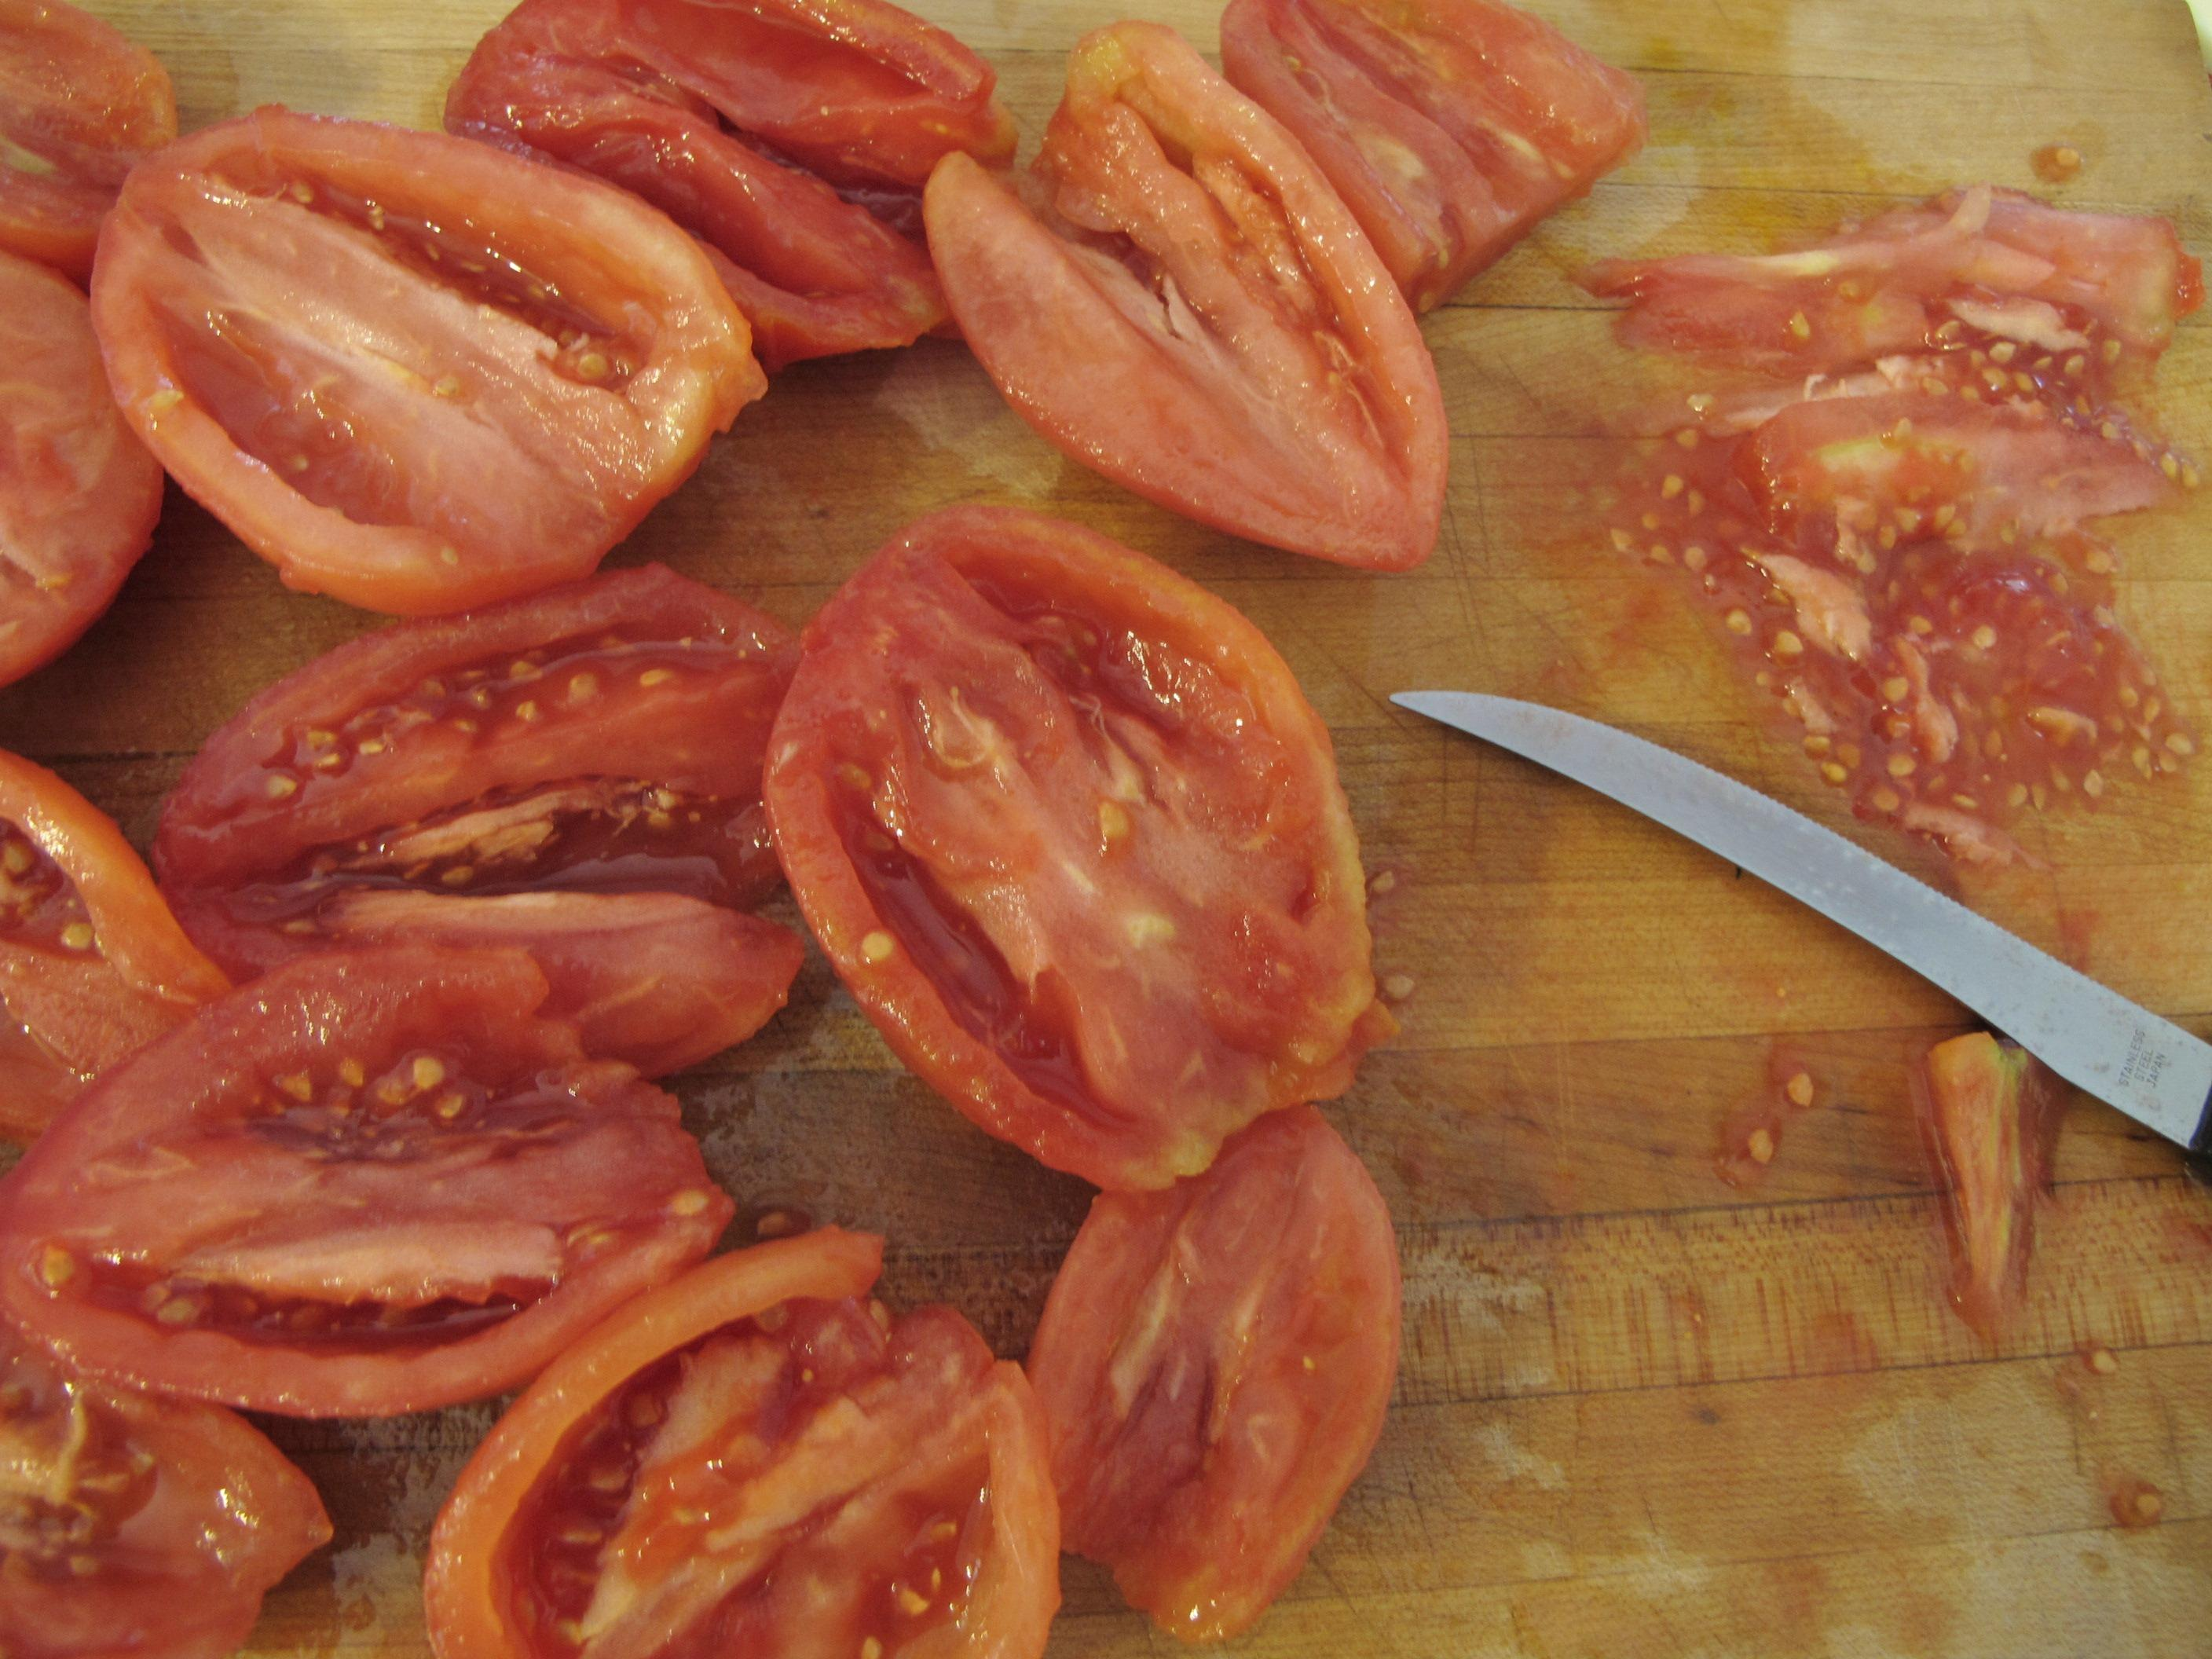 ... tomatoes let in slowly melt in pan while working with tomatoes